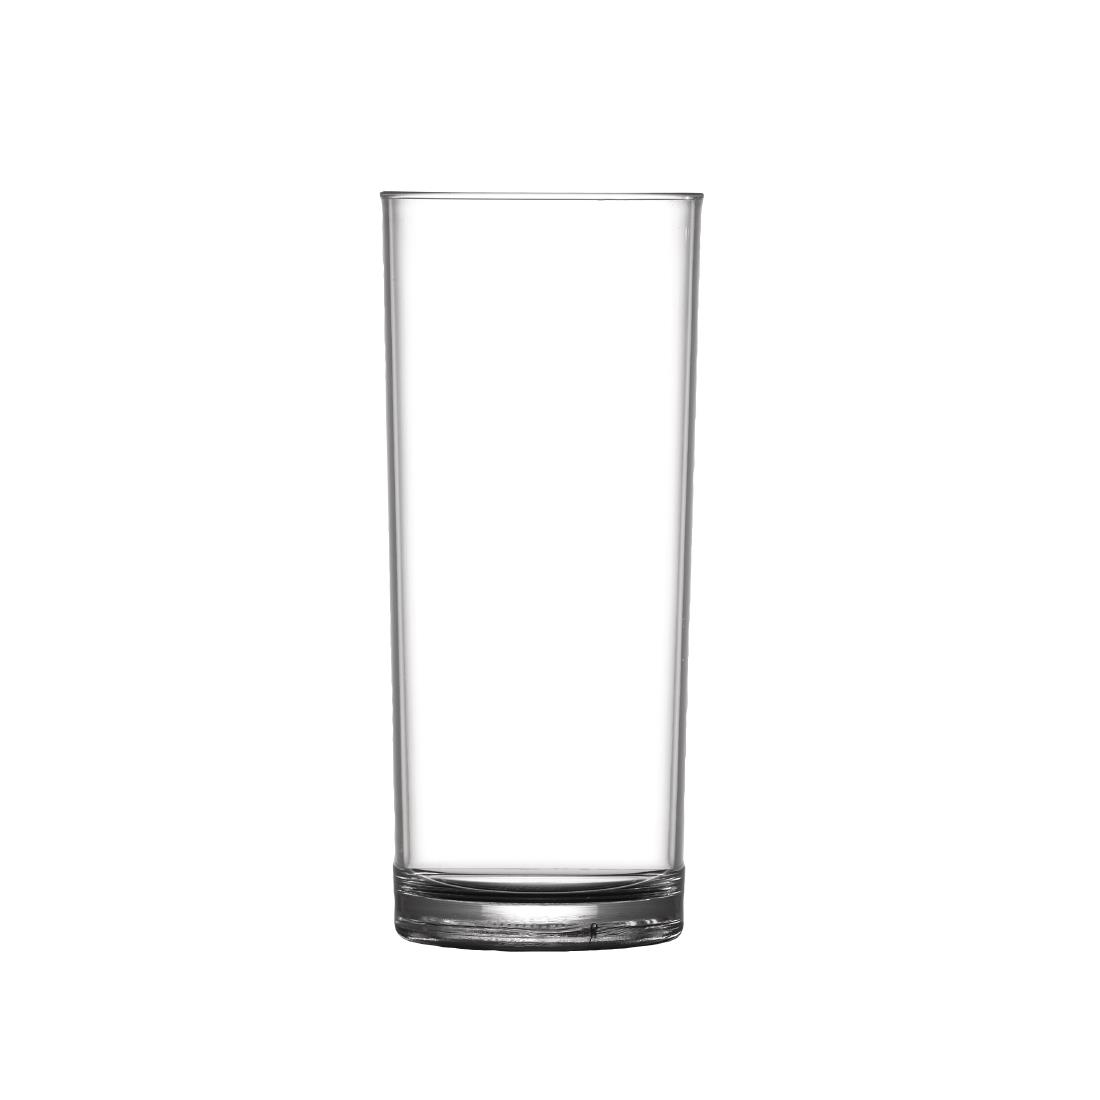 Image of BBP Polycarbonate Elite Hiball Glass CE 10oz (Pack of 36) Pack of 36